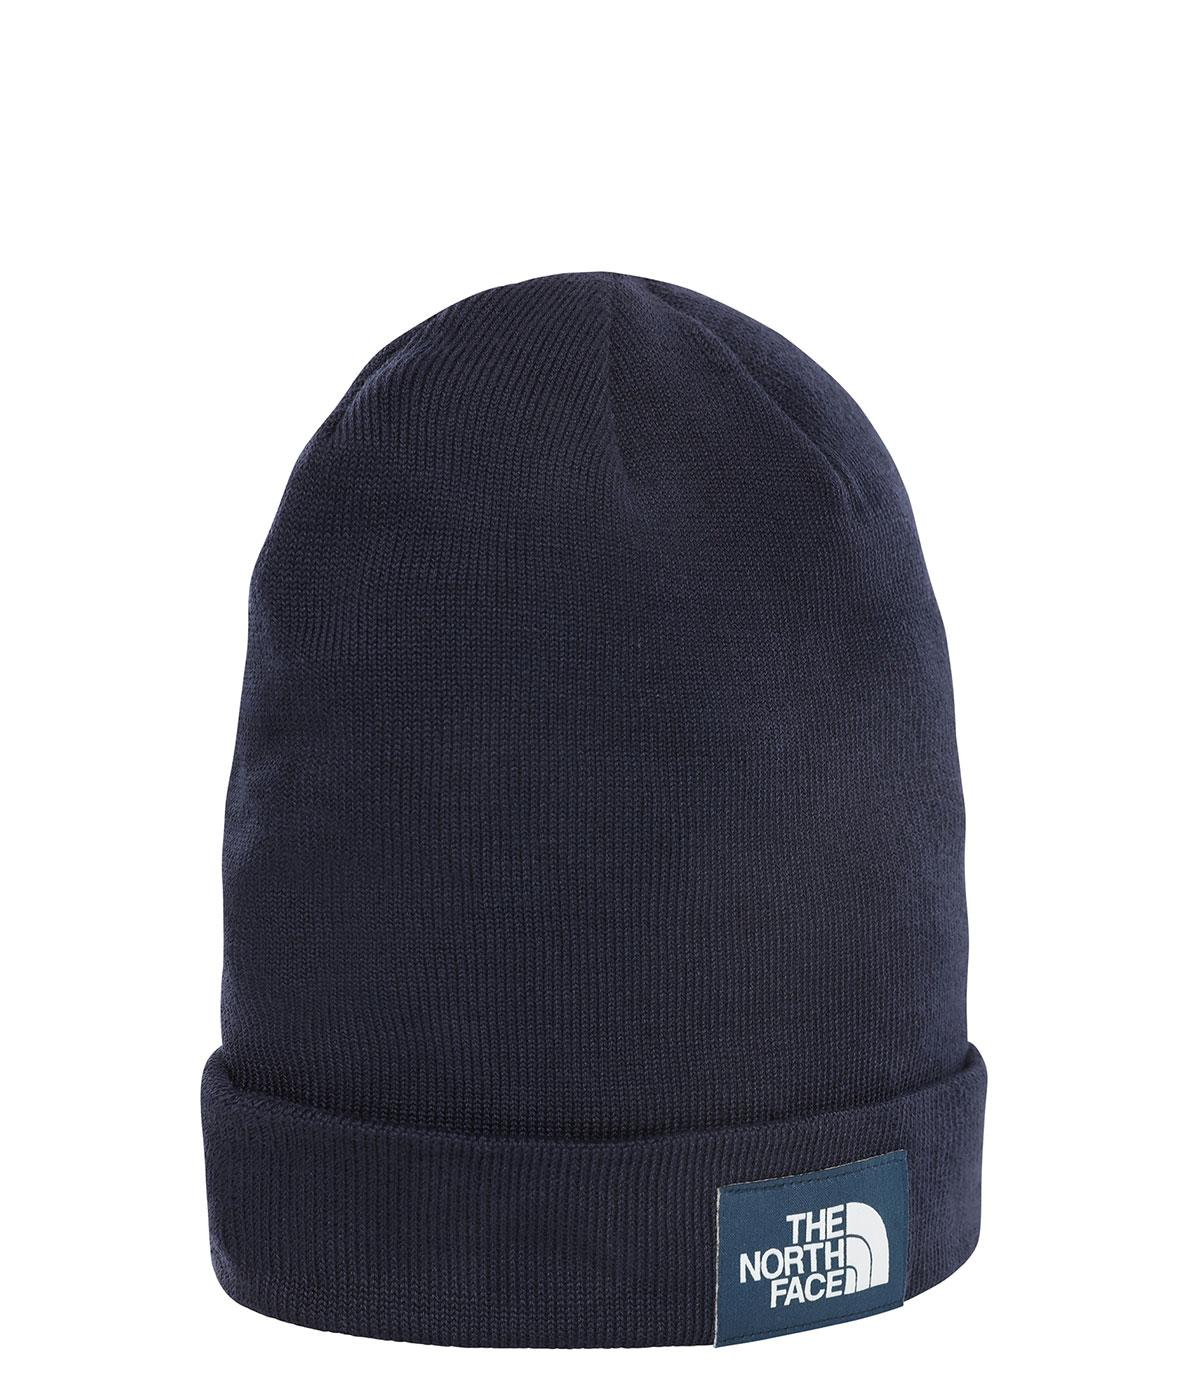 The North Face Dock Worker Rcyld bere nf0A3Fnt3Vw1